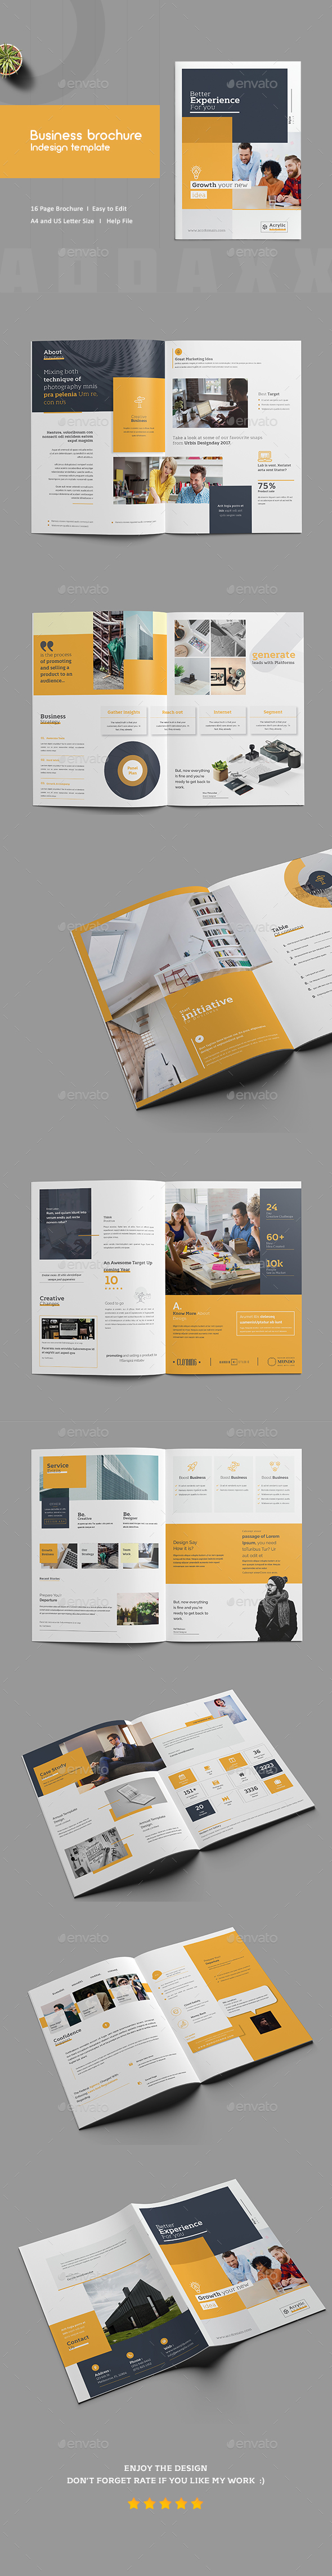 Business Brochure InDesign Template - Corporate Brochures